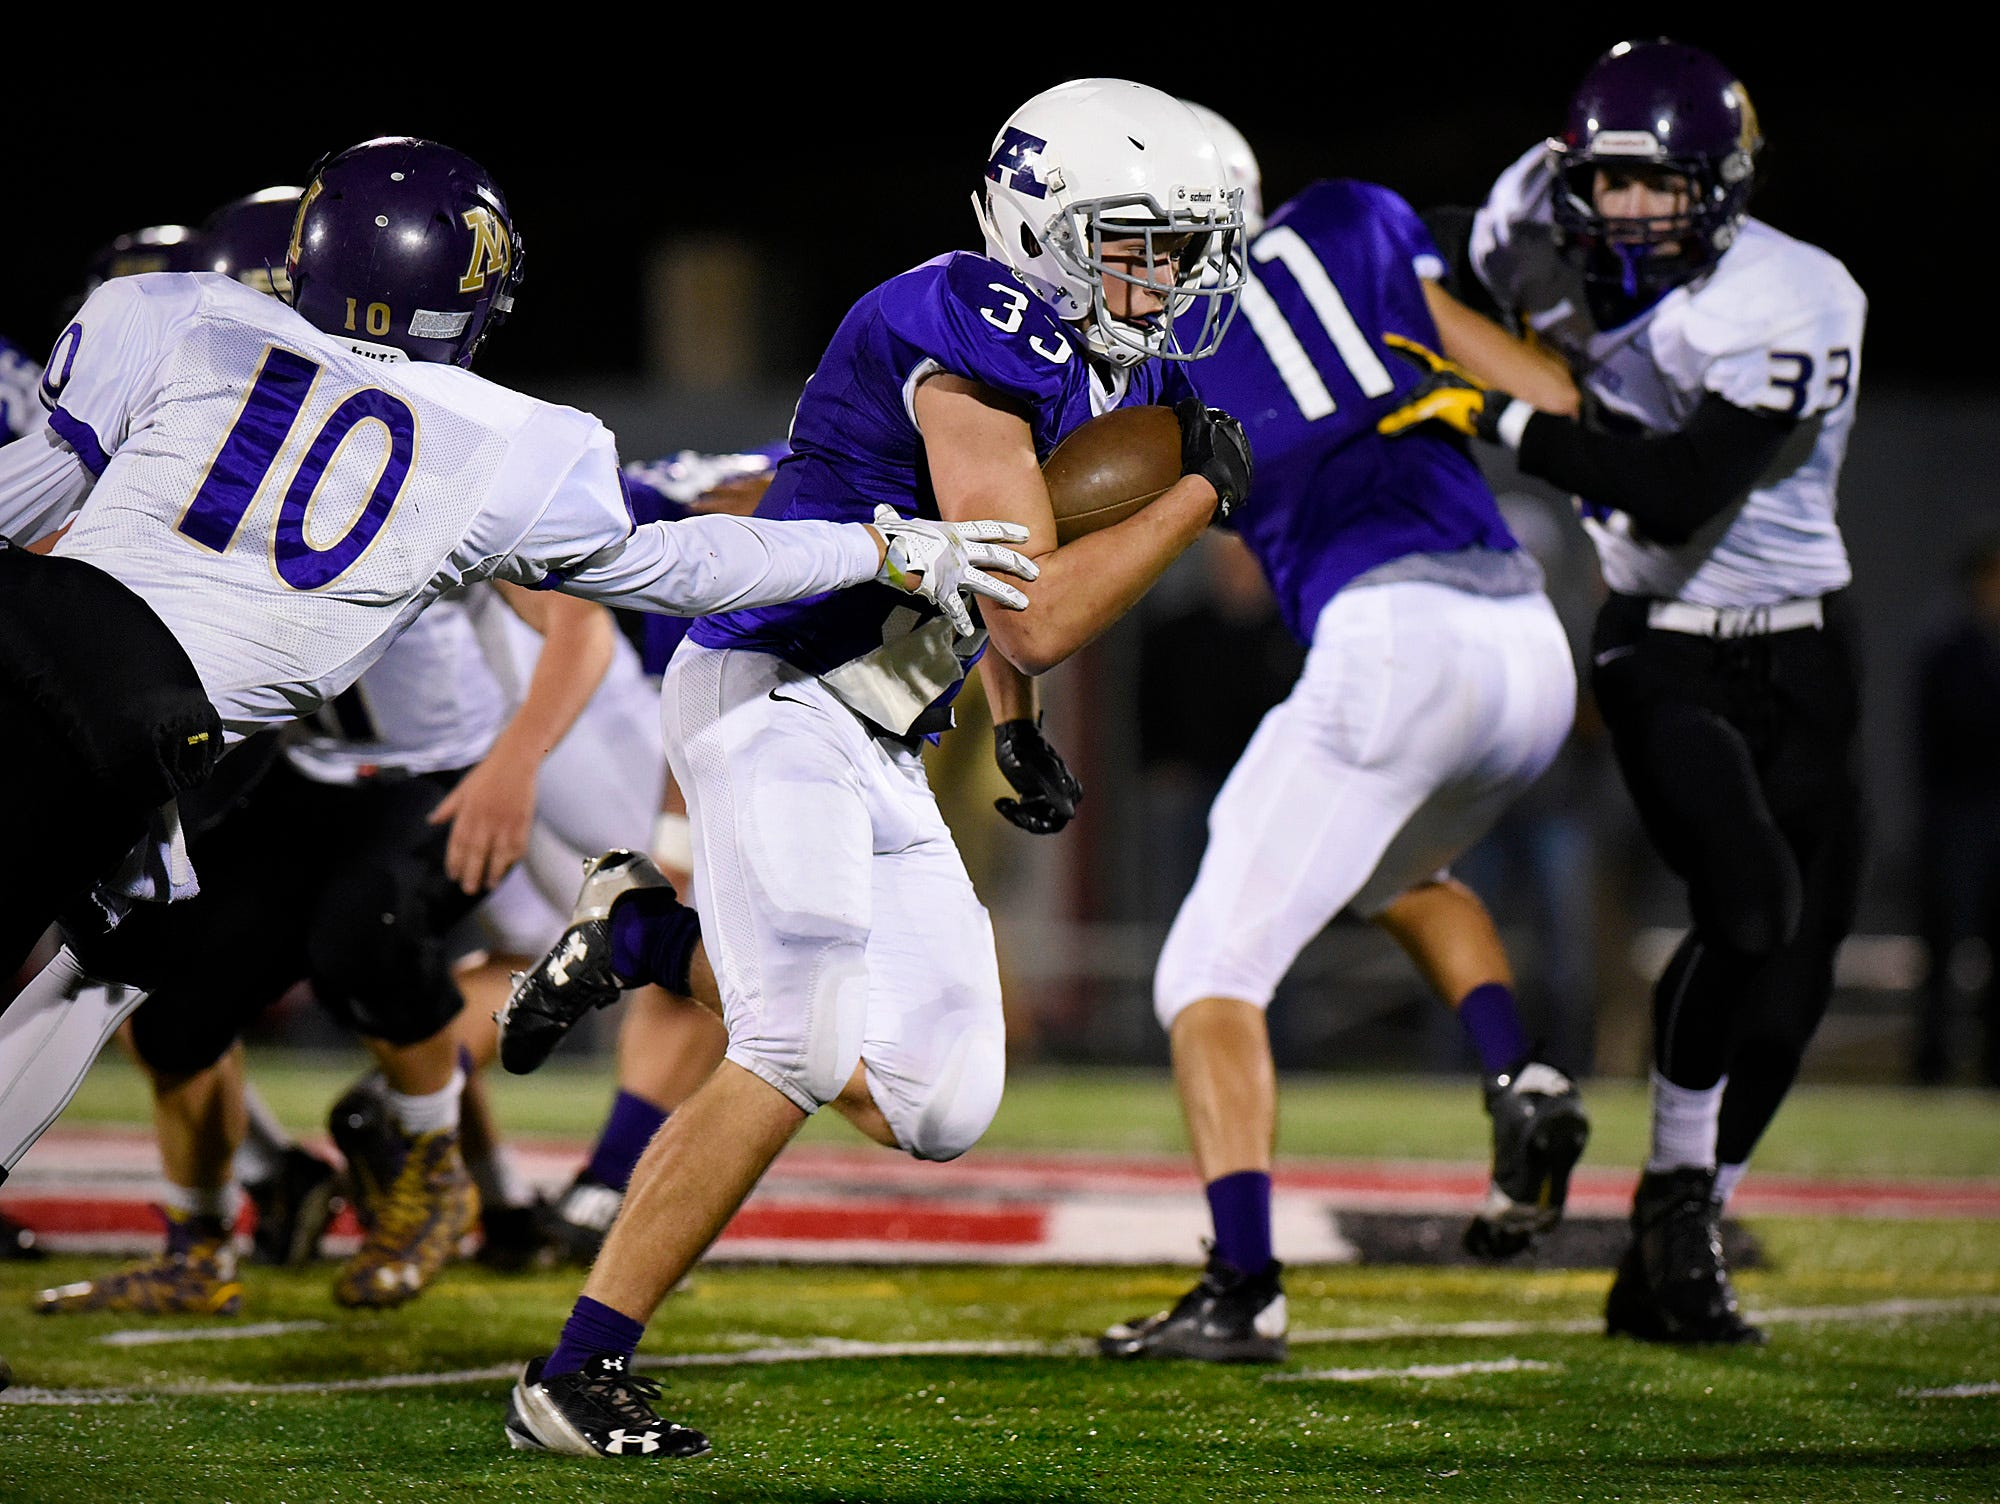 Albany's Kyle Birr breaks away and goes 43 yards to score against Montevideo during the first half Saturday, Oct. 24 at Husky Stadium.